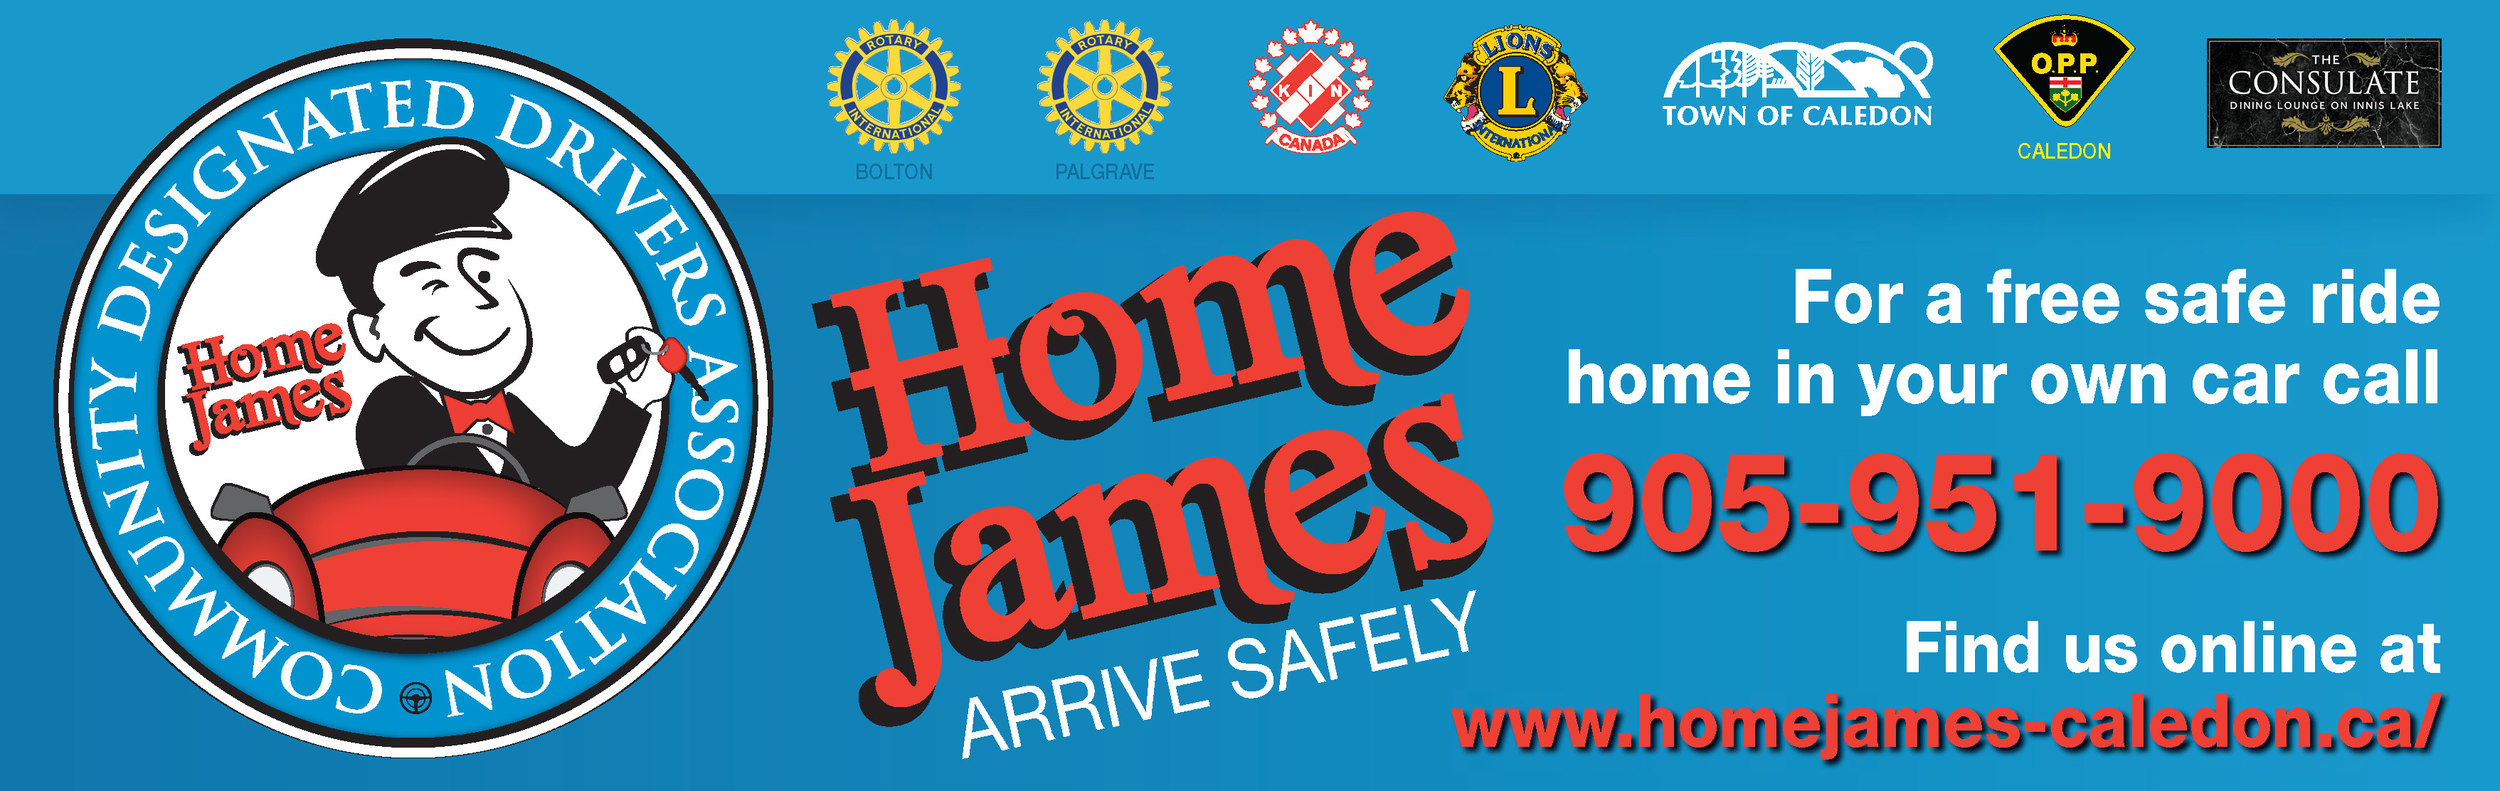 Home James web banner NEW October 3.jpg